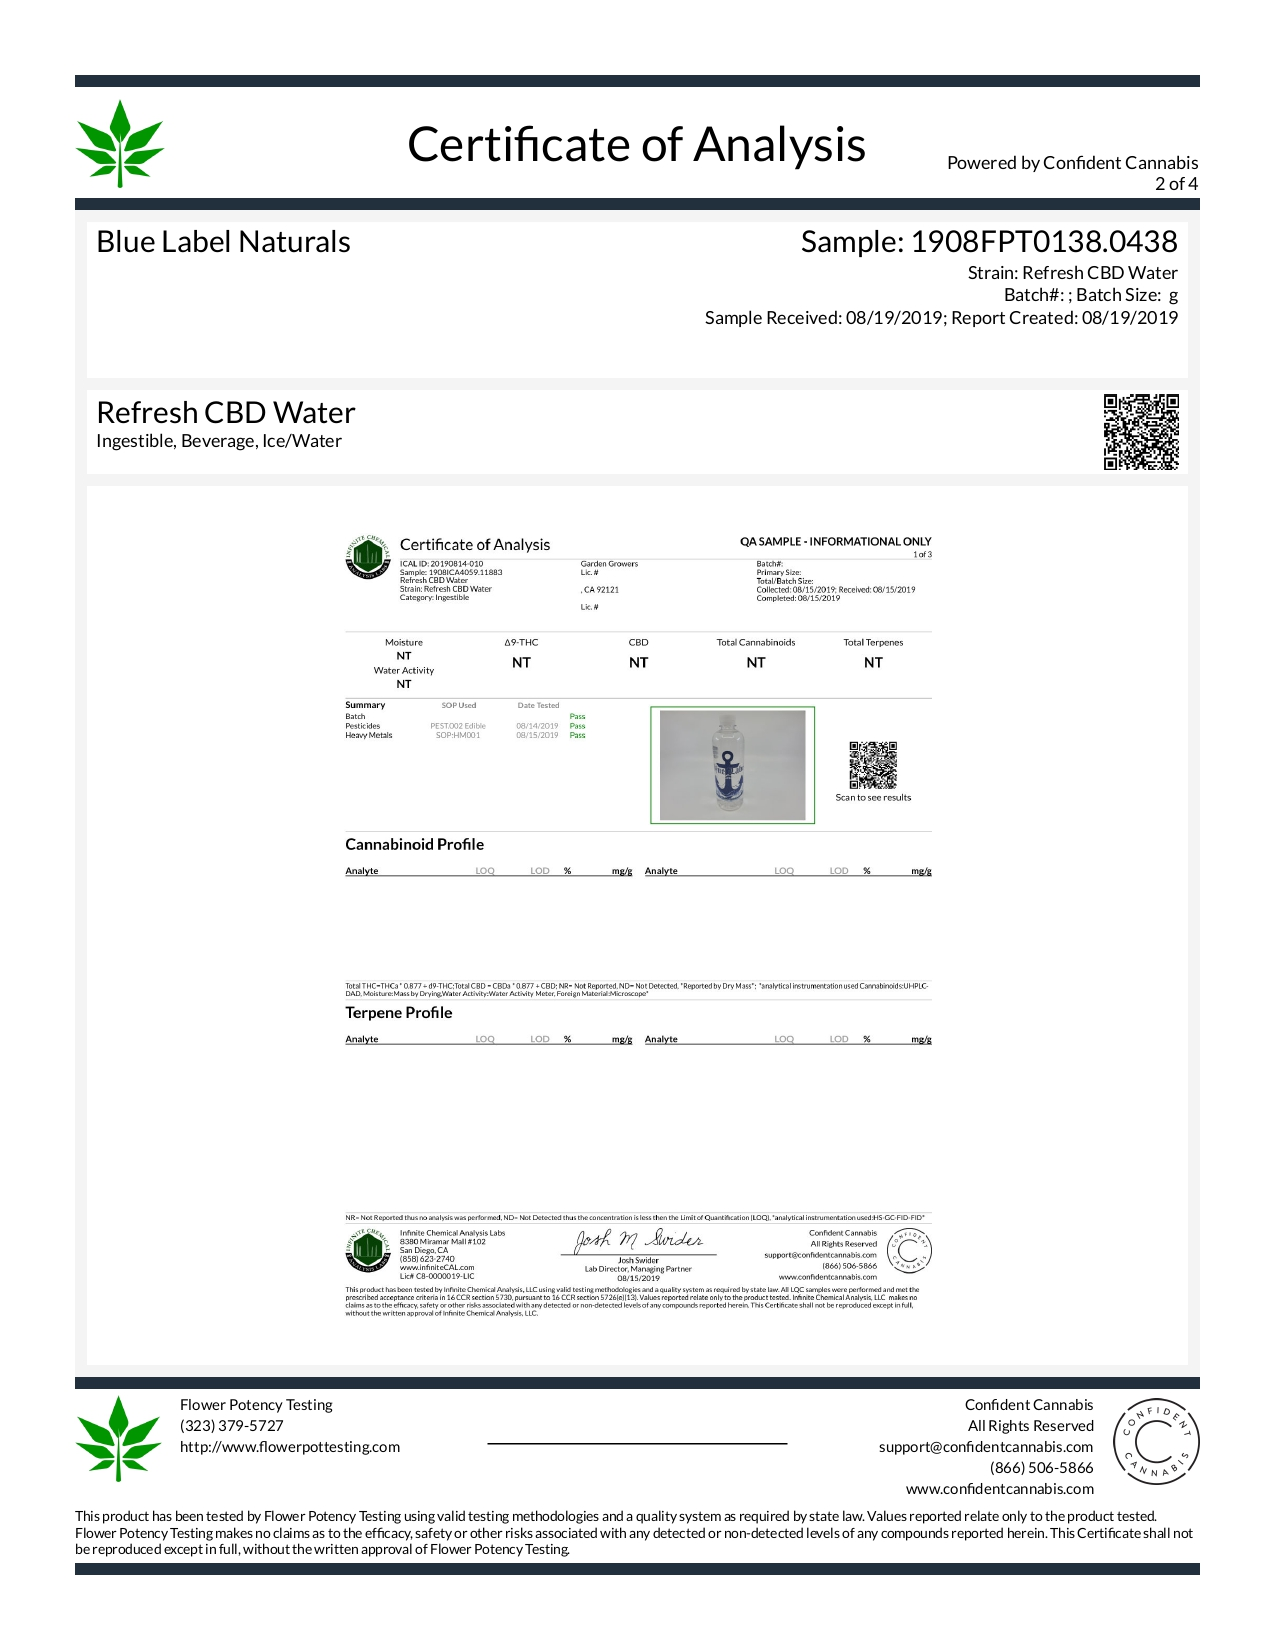 Blue Label CBD Edible Alkaline Water Lab Report